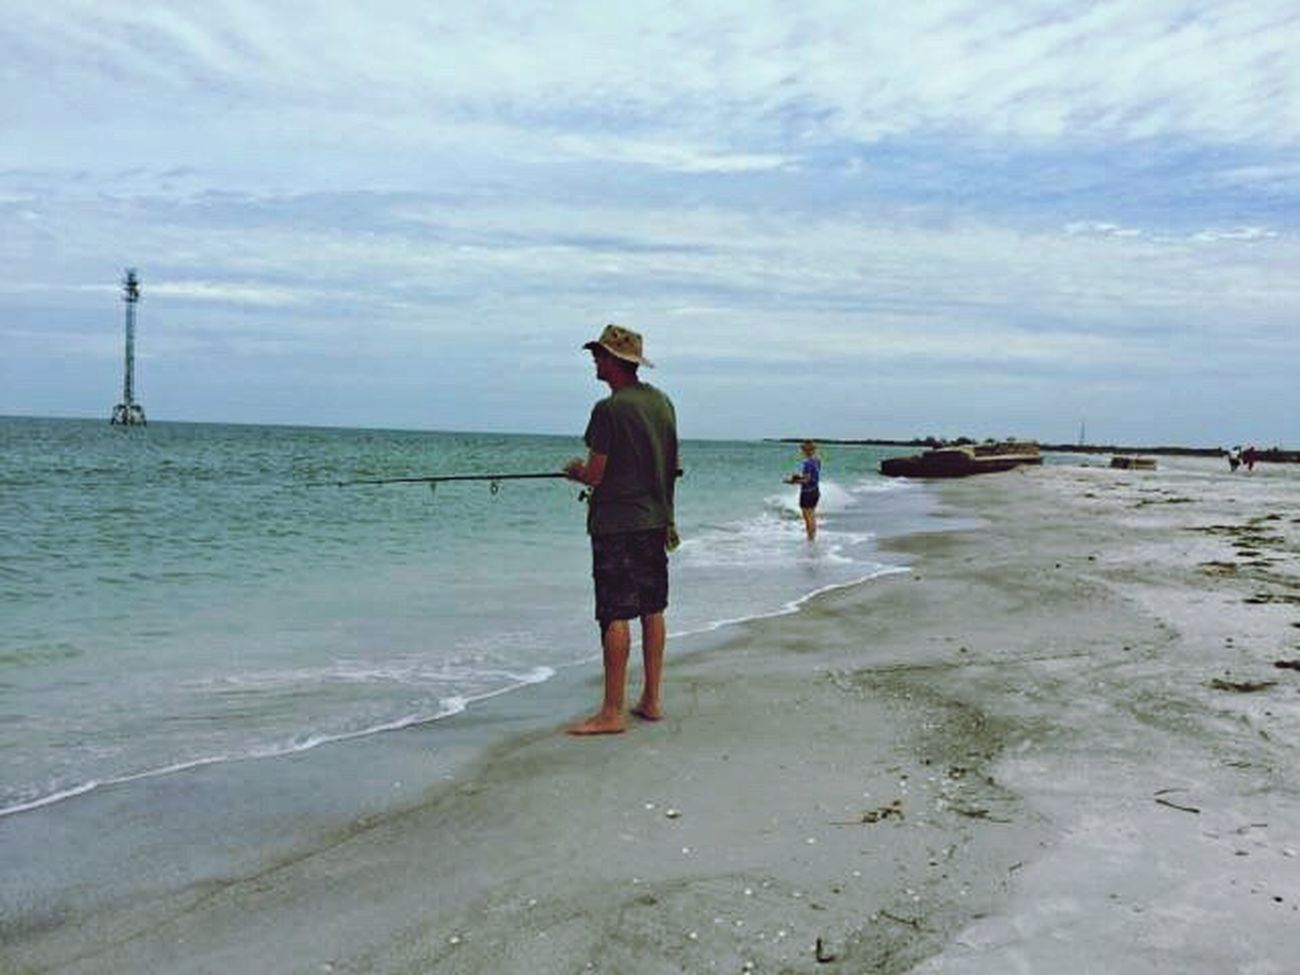 Adventure Club Ocean Breeze Ocean Views Ocean Photography Beach Waves Fishing Trip Fishing Life Fishing On The Beach Fisherman ´s Life Fisherman Beach Fort De Soto Park Fort De Soto Beach FishEyeEm Ocean Water Sand And Beach Beach Fishing Sand Sea Sky Sand And Sea Shells Sand